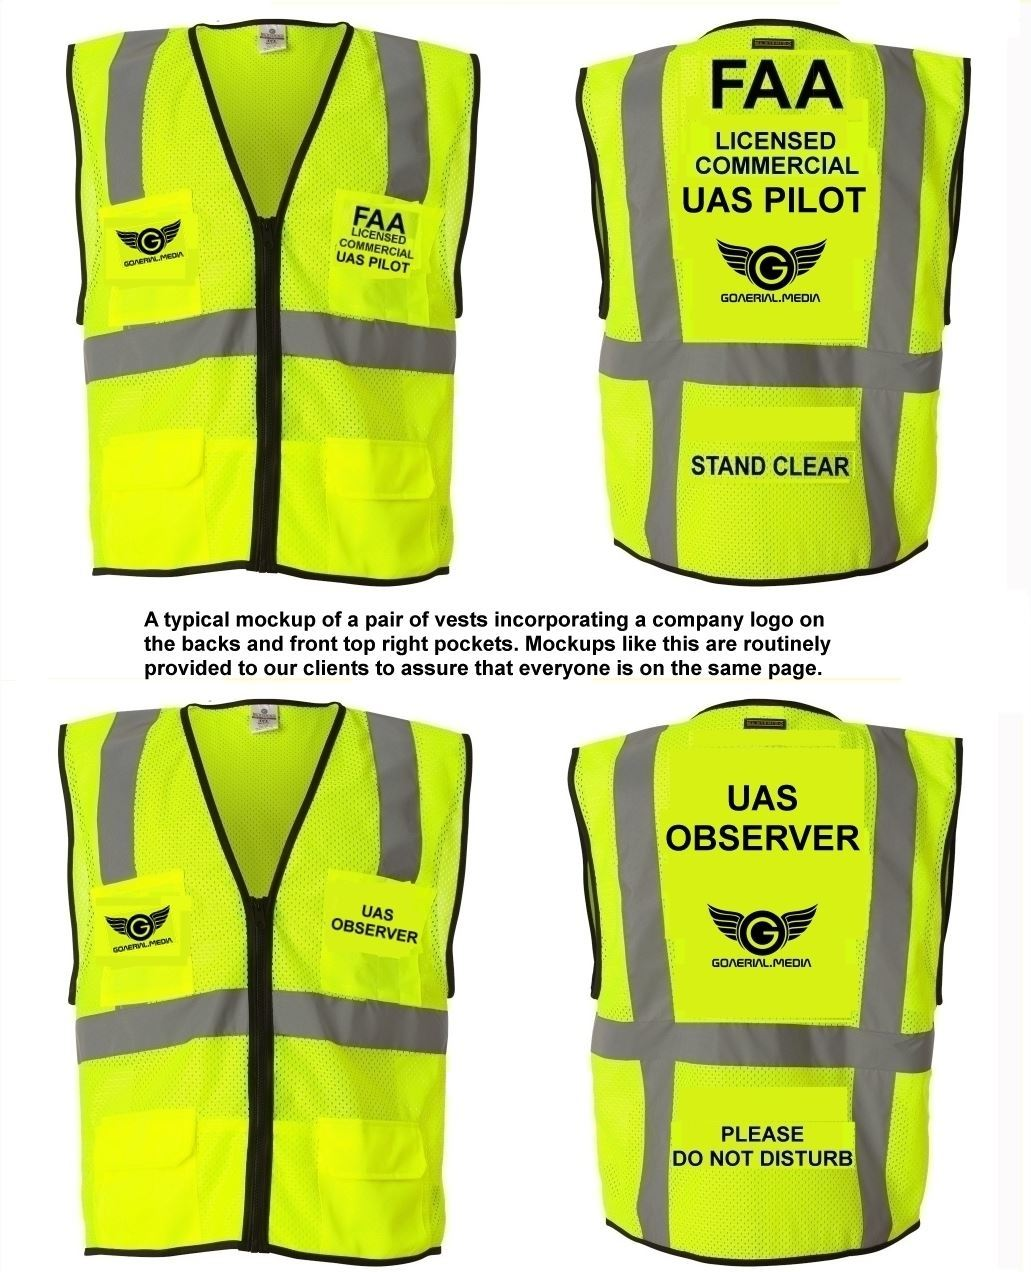 R1 Flt Ops Offers FAA Part §107 Drone Pilot & Observer High Visibility Drone Safety Vests